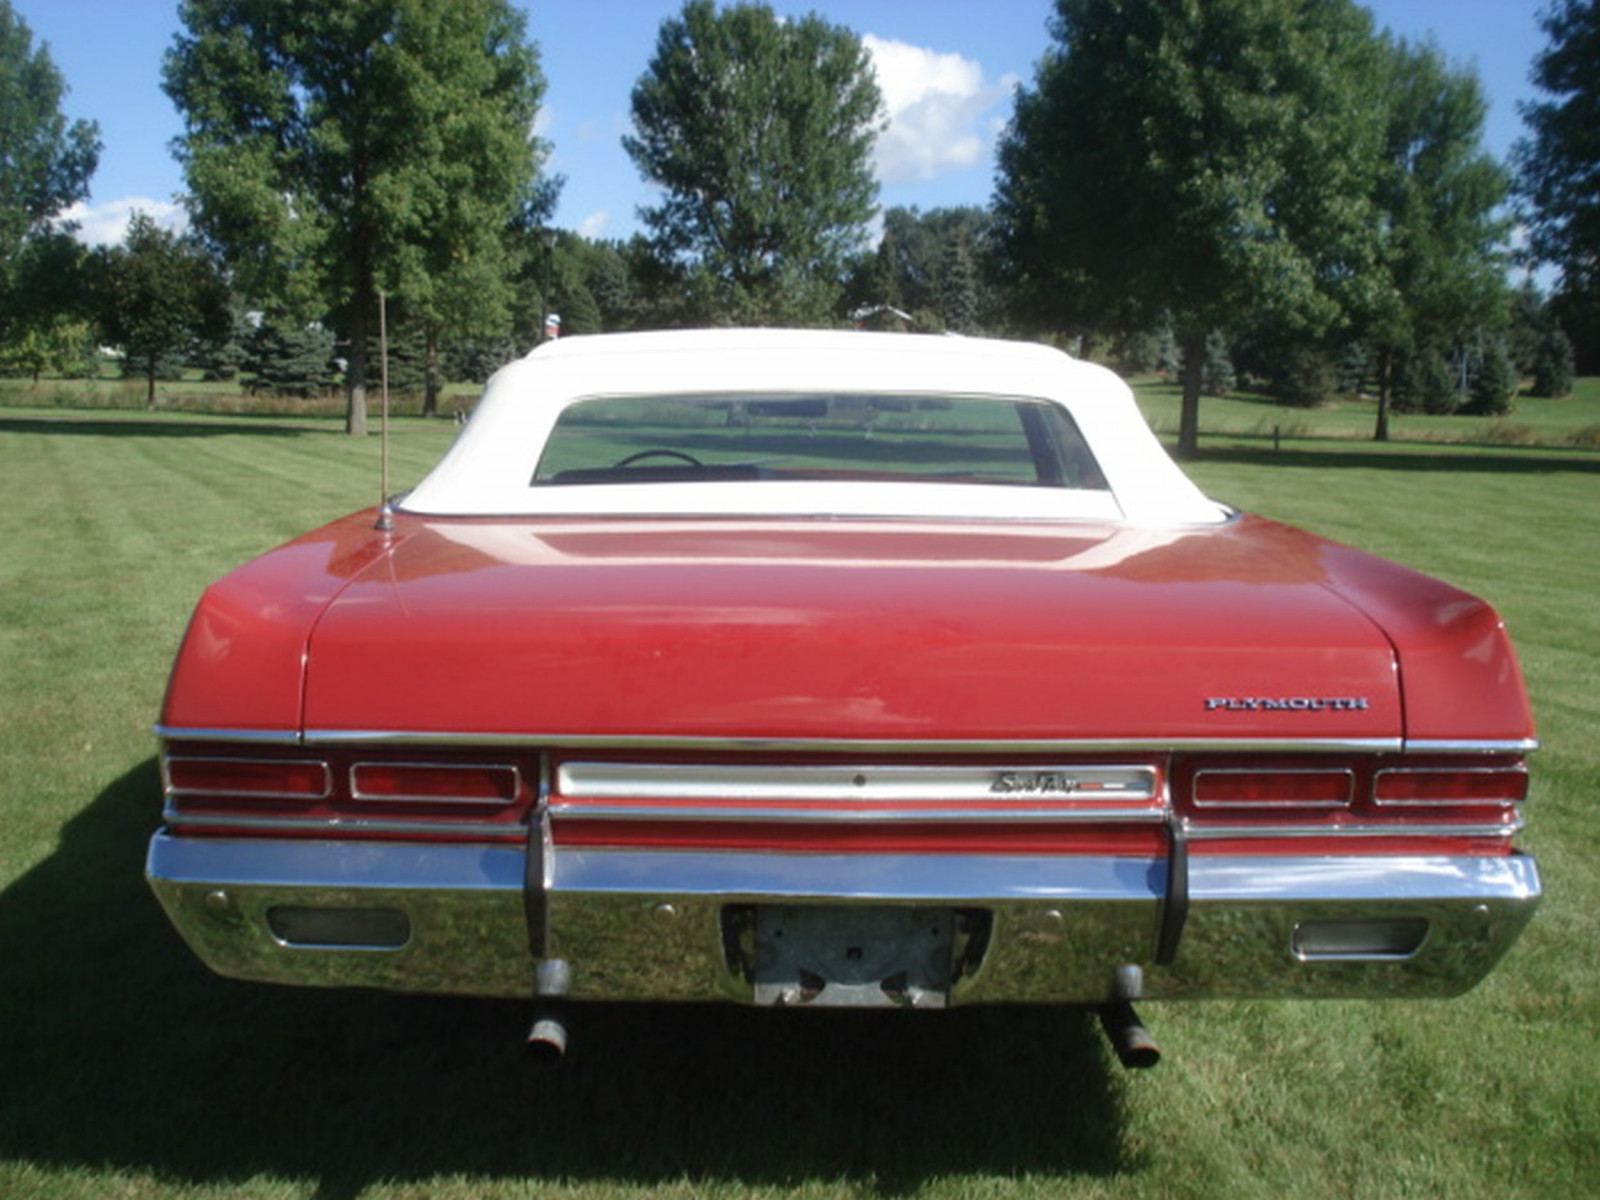 1969 Plymouth Sport Fury Convertible - Image 5